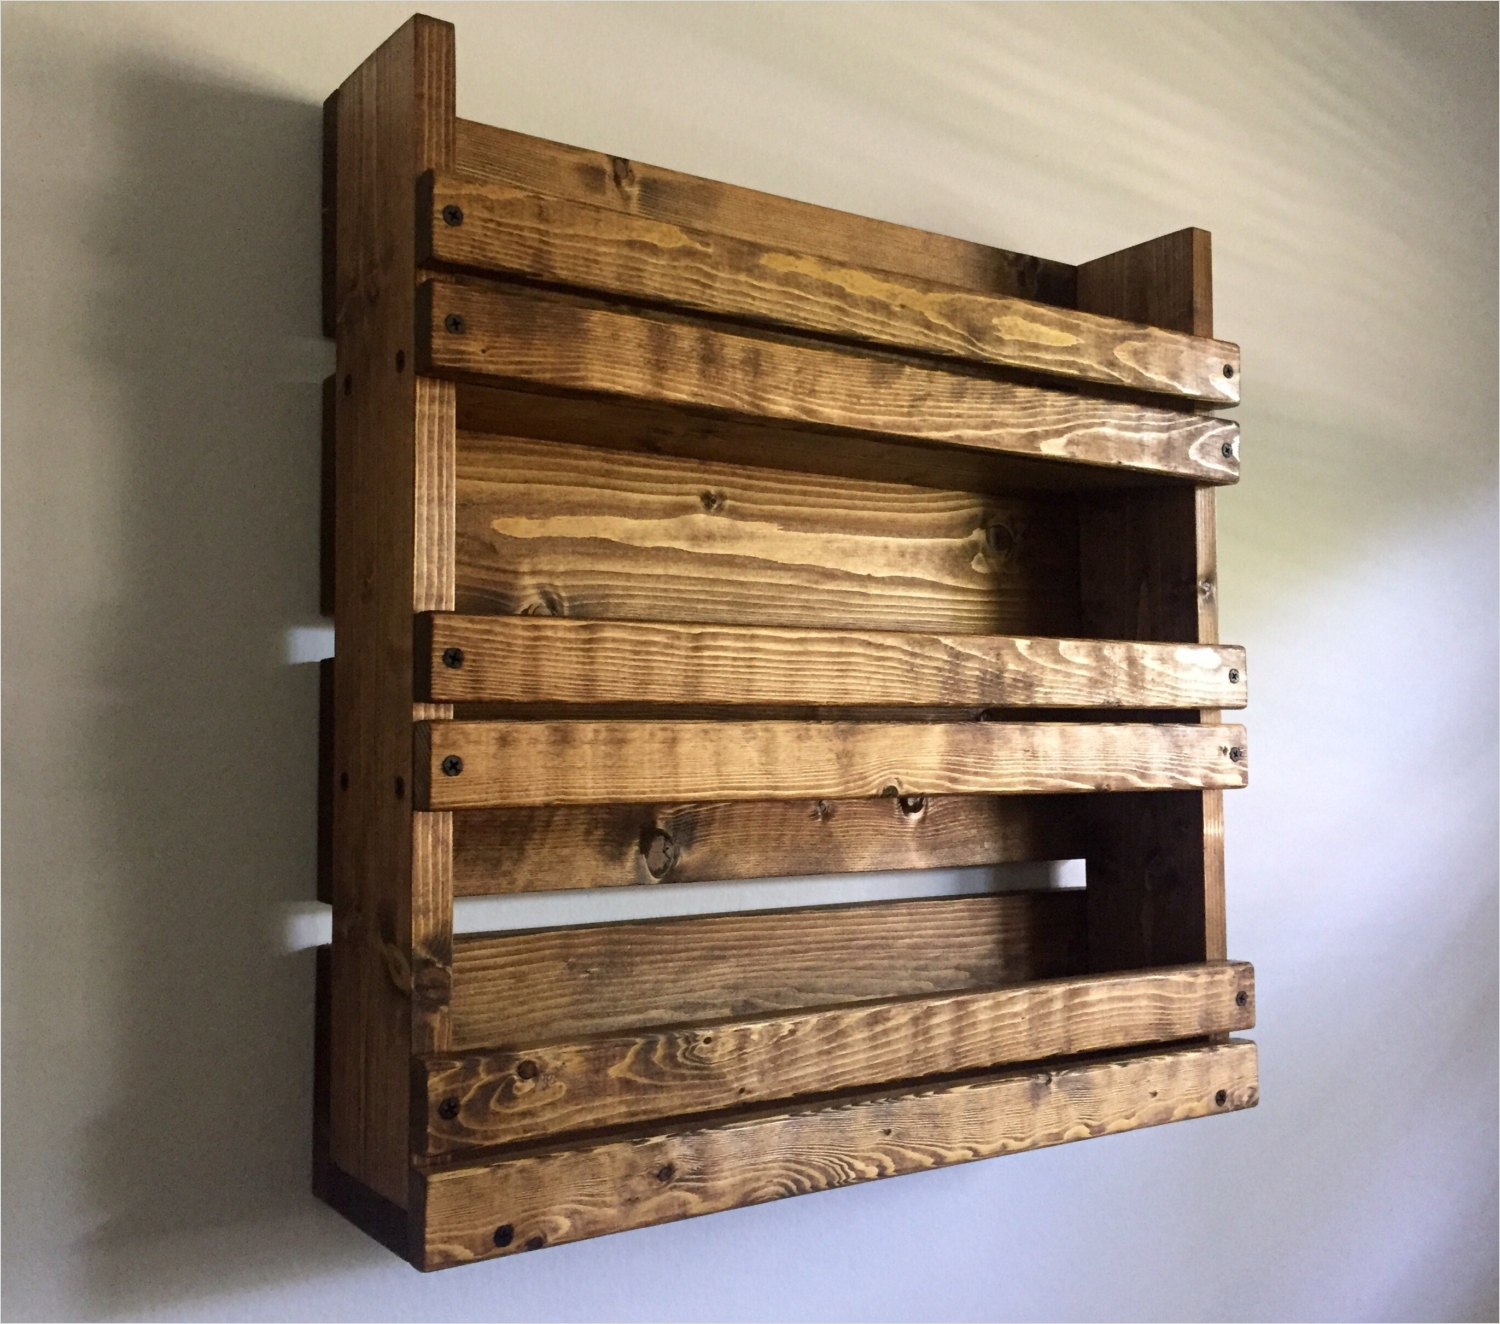 45 Creative Rustic Wall Mounted Bookshelves 17 Spice Rack Rustic Spice Rack with 3 Shelves by Blackironworks 1